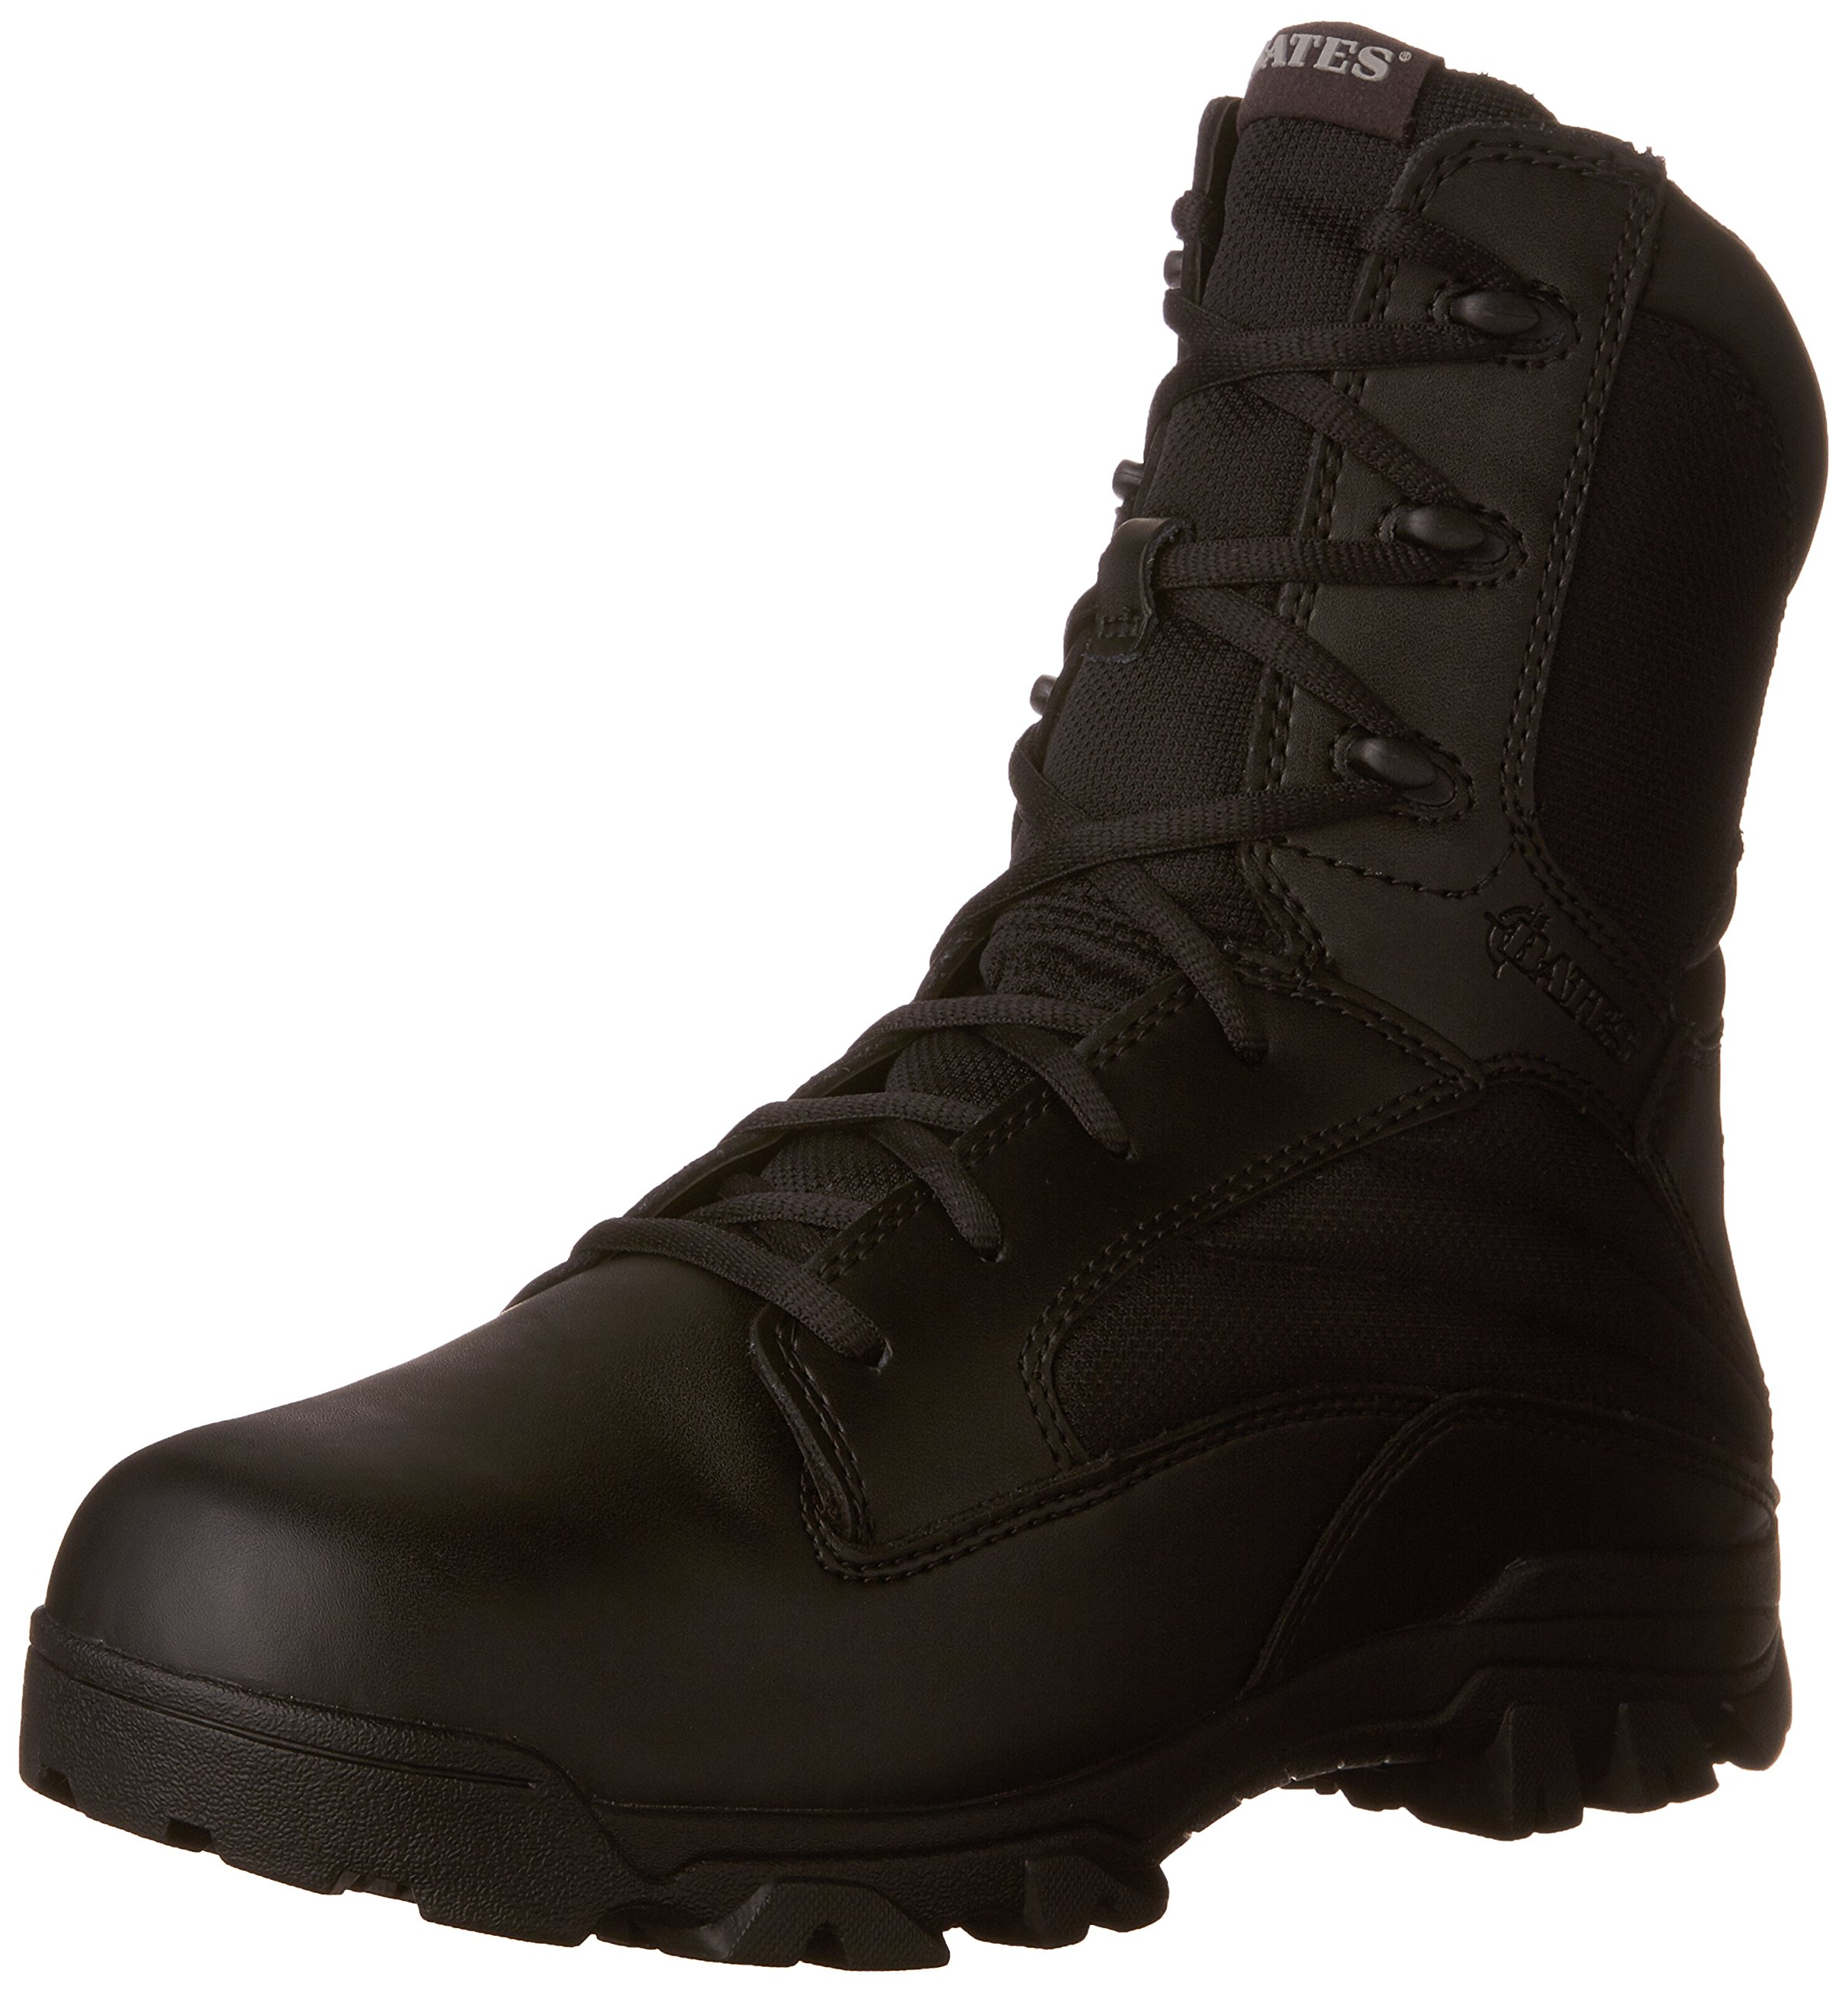 Bates Men's 8 Inch Leather Nylon Side Zip Uniform Boot, Black, 9 M US by Bates